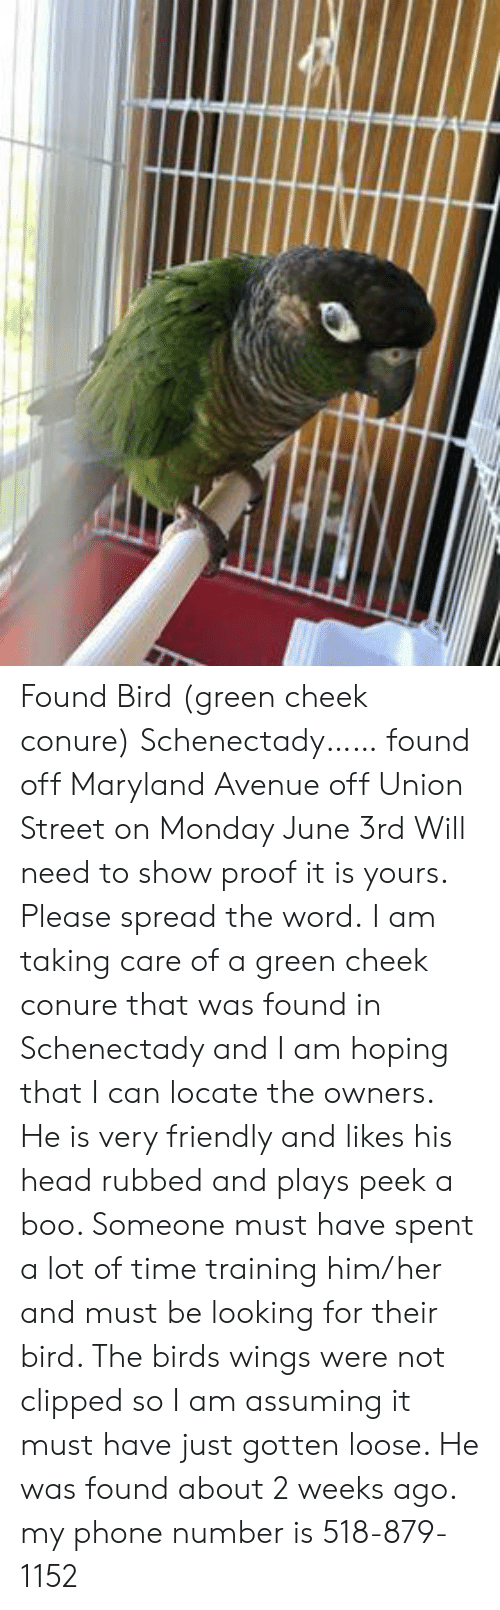 Boo, Head, and Memes: Found Bird (green cheek conure) Schenectady…… found off Maryland Avenue off Union Street on Monday June 3rd Will need to show proof it is yours.  Please spread the word.  I am taking care of a green cheek conure that was found in Schenectady and I am hoping that I can locate the owners. He is very friendly and likes his head rubbed and plays peek a boo.  Someone must have spent a lot of time training him/her and must be looking for their bird.  The birds wings were not clipped so I am assuming it must have just gotten loose.  He was found about 2 weeks ago.    my phone number  is 518-879-1152